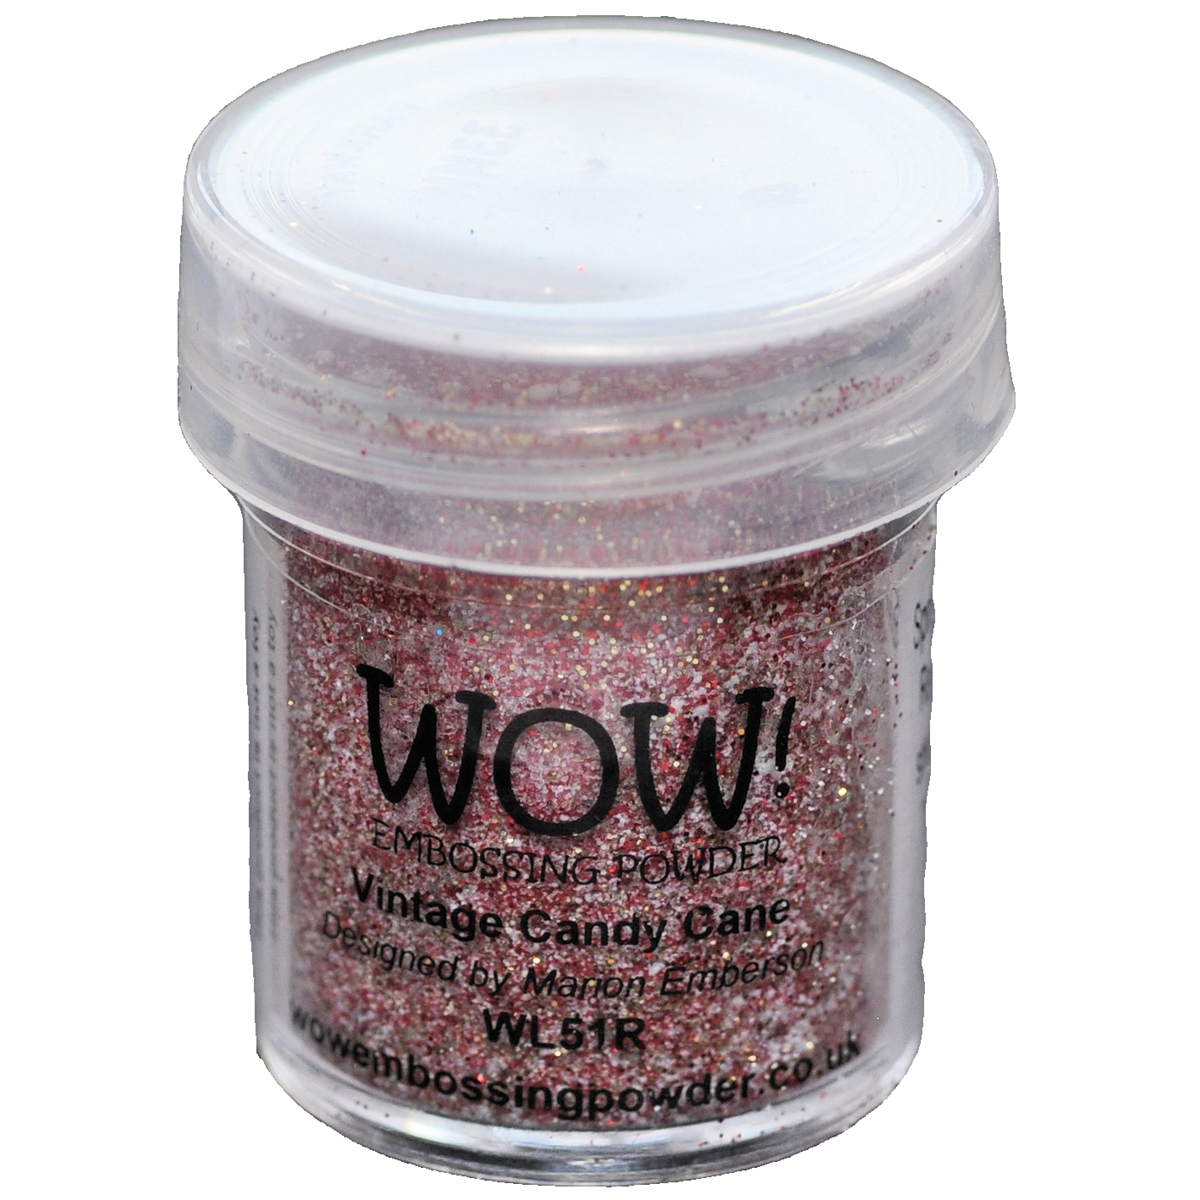 WOW! Embossing Powder 15ml-Vintage Candy Cane